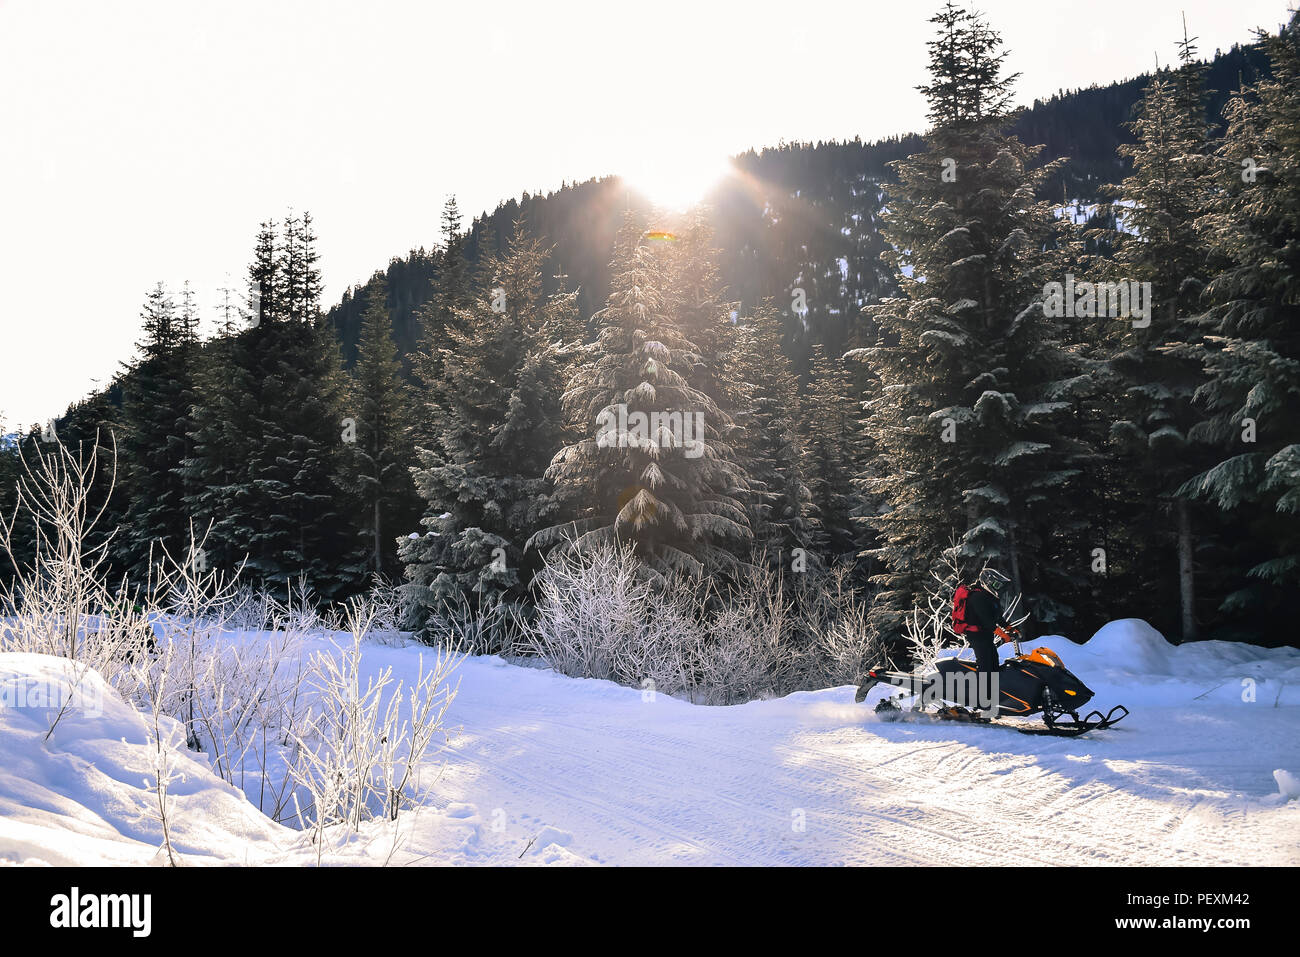 Man with snowmobile near forest, Callaghan Valley, Whistler, British Columbia, Canada - Stock Image